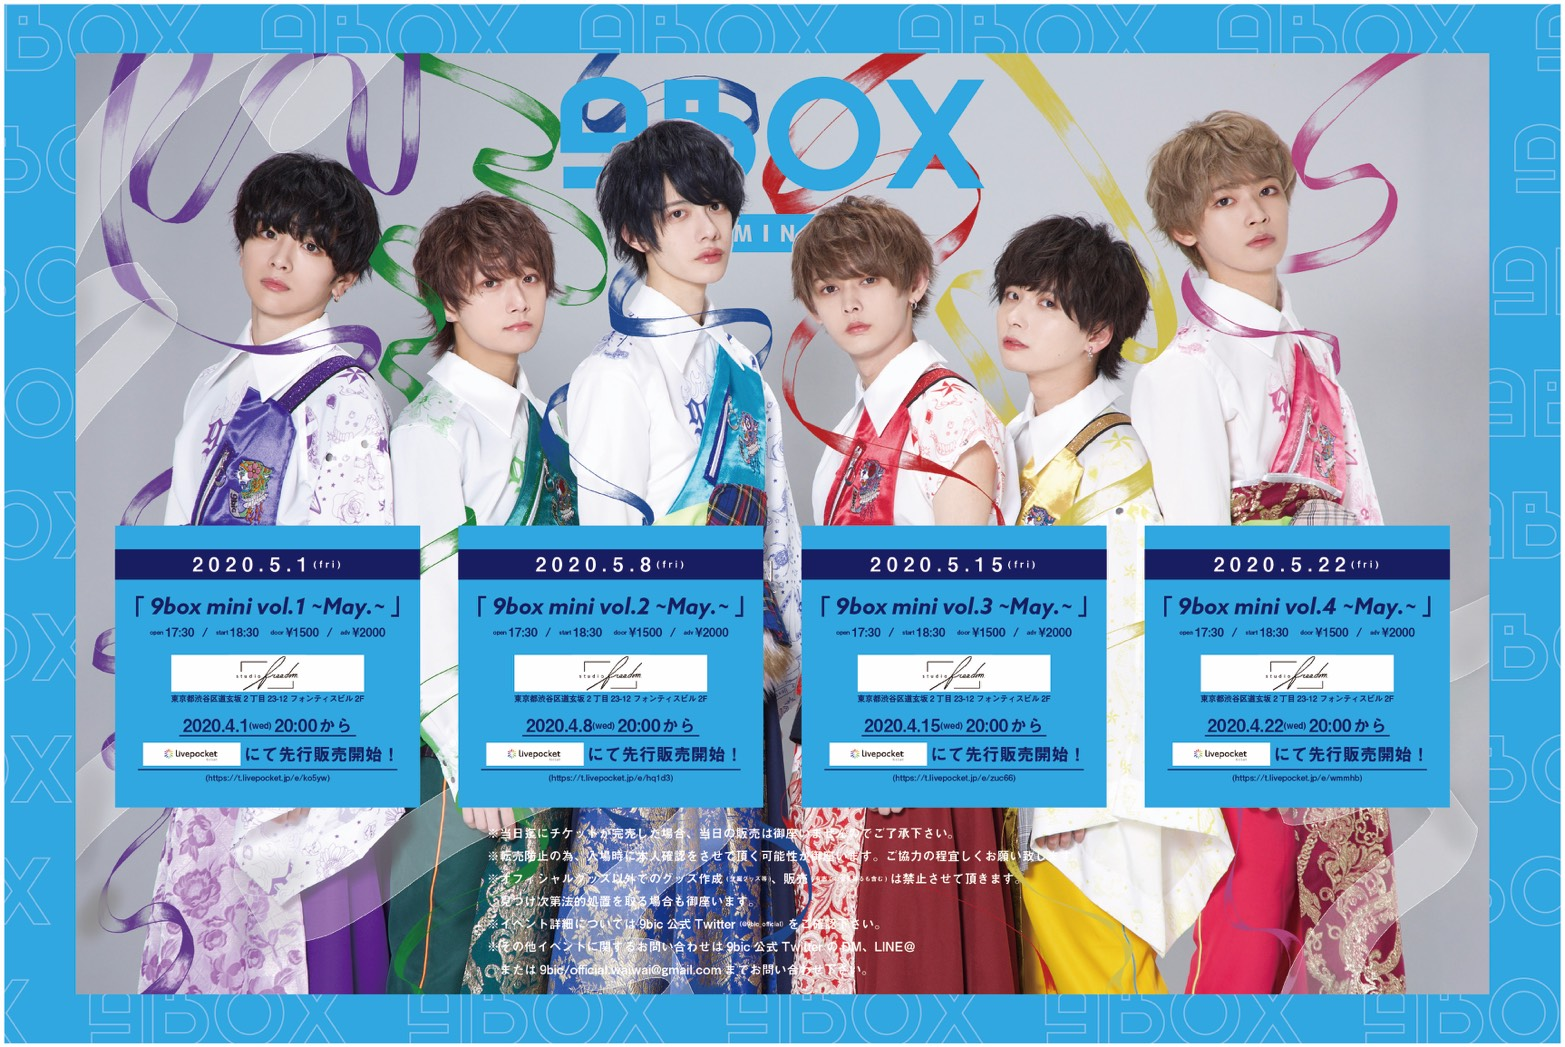 9box mini vol.3 ~May.~